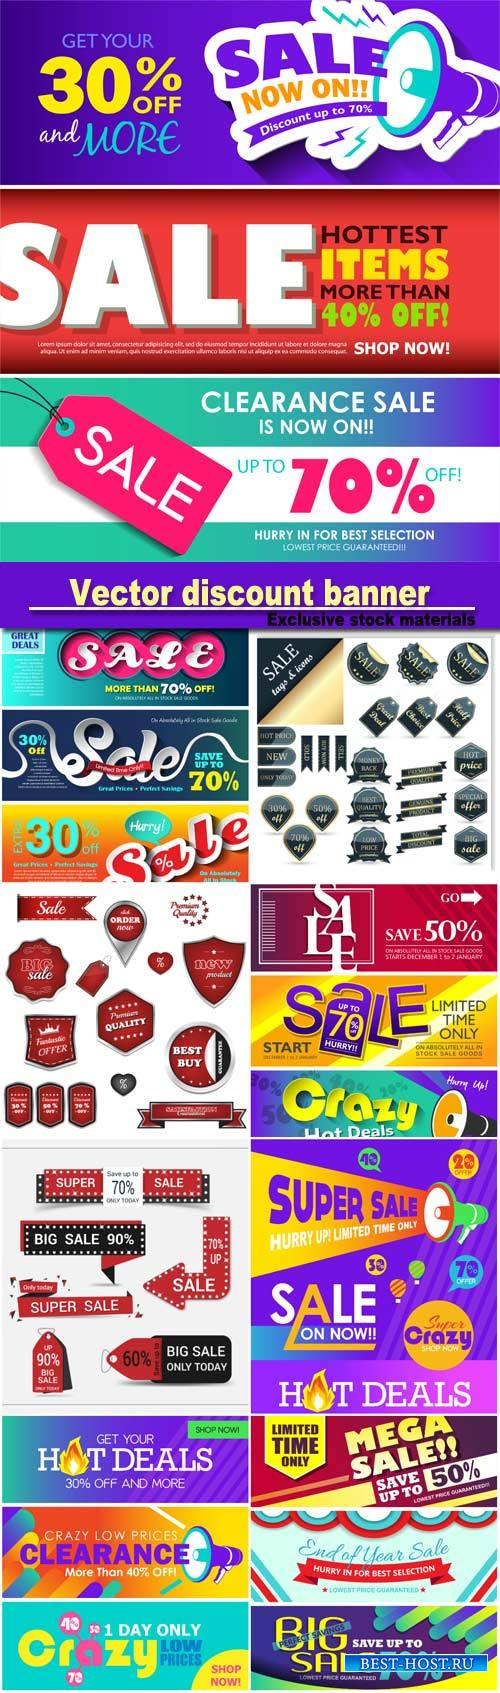 Sale tags and icons, vector discount banner